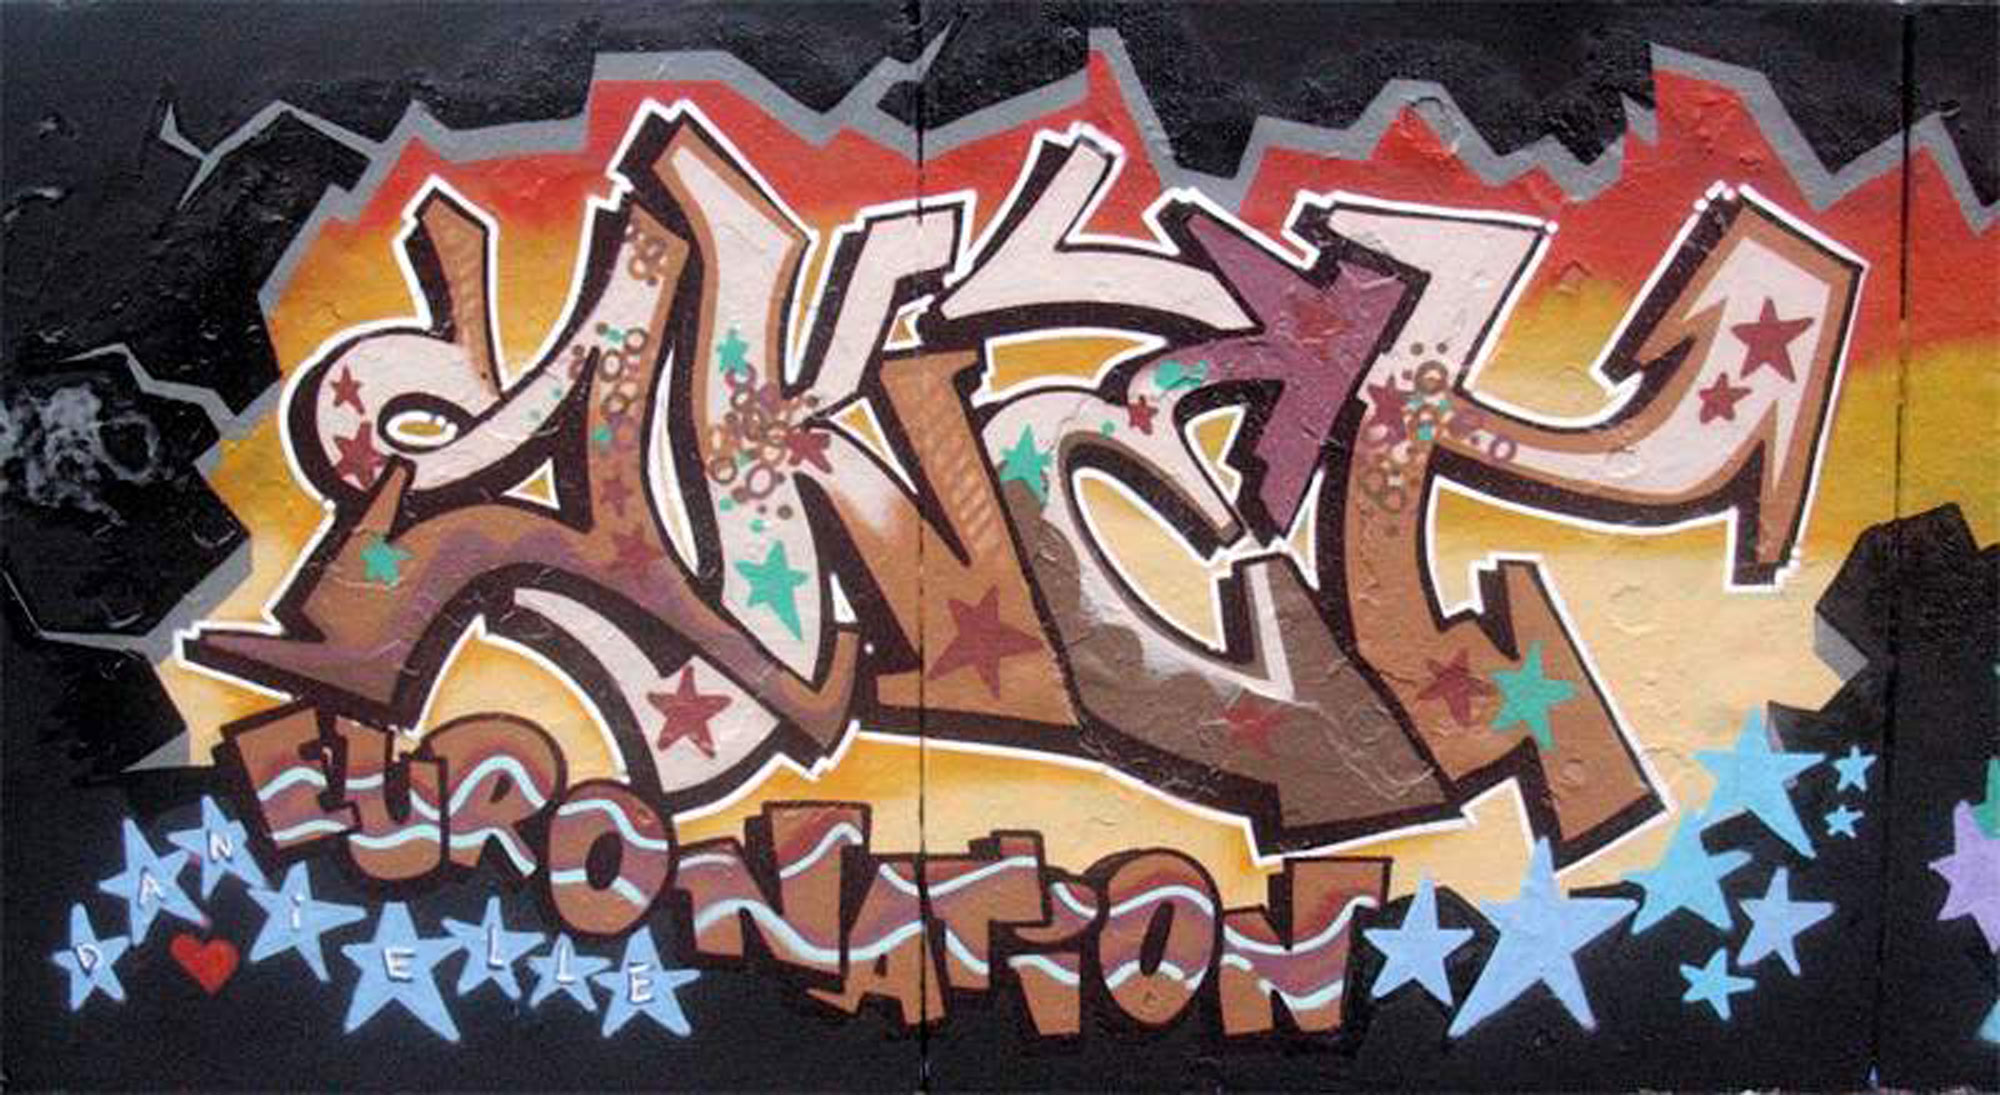 sket_the_hague2006